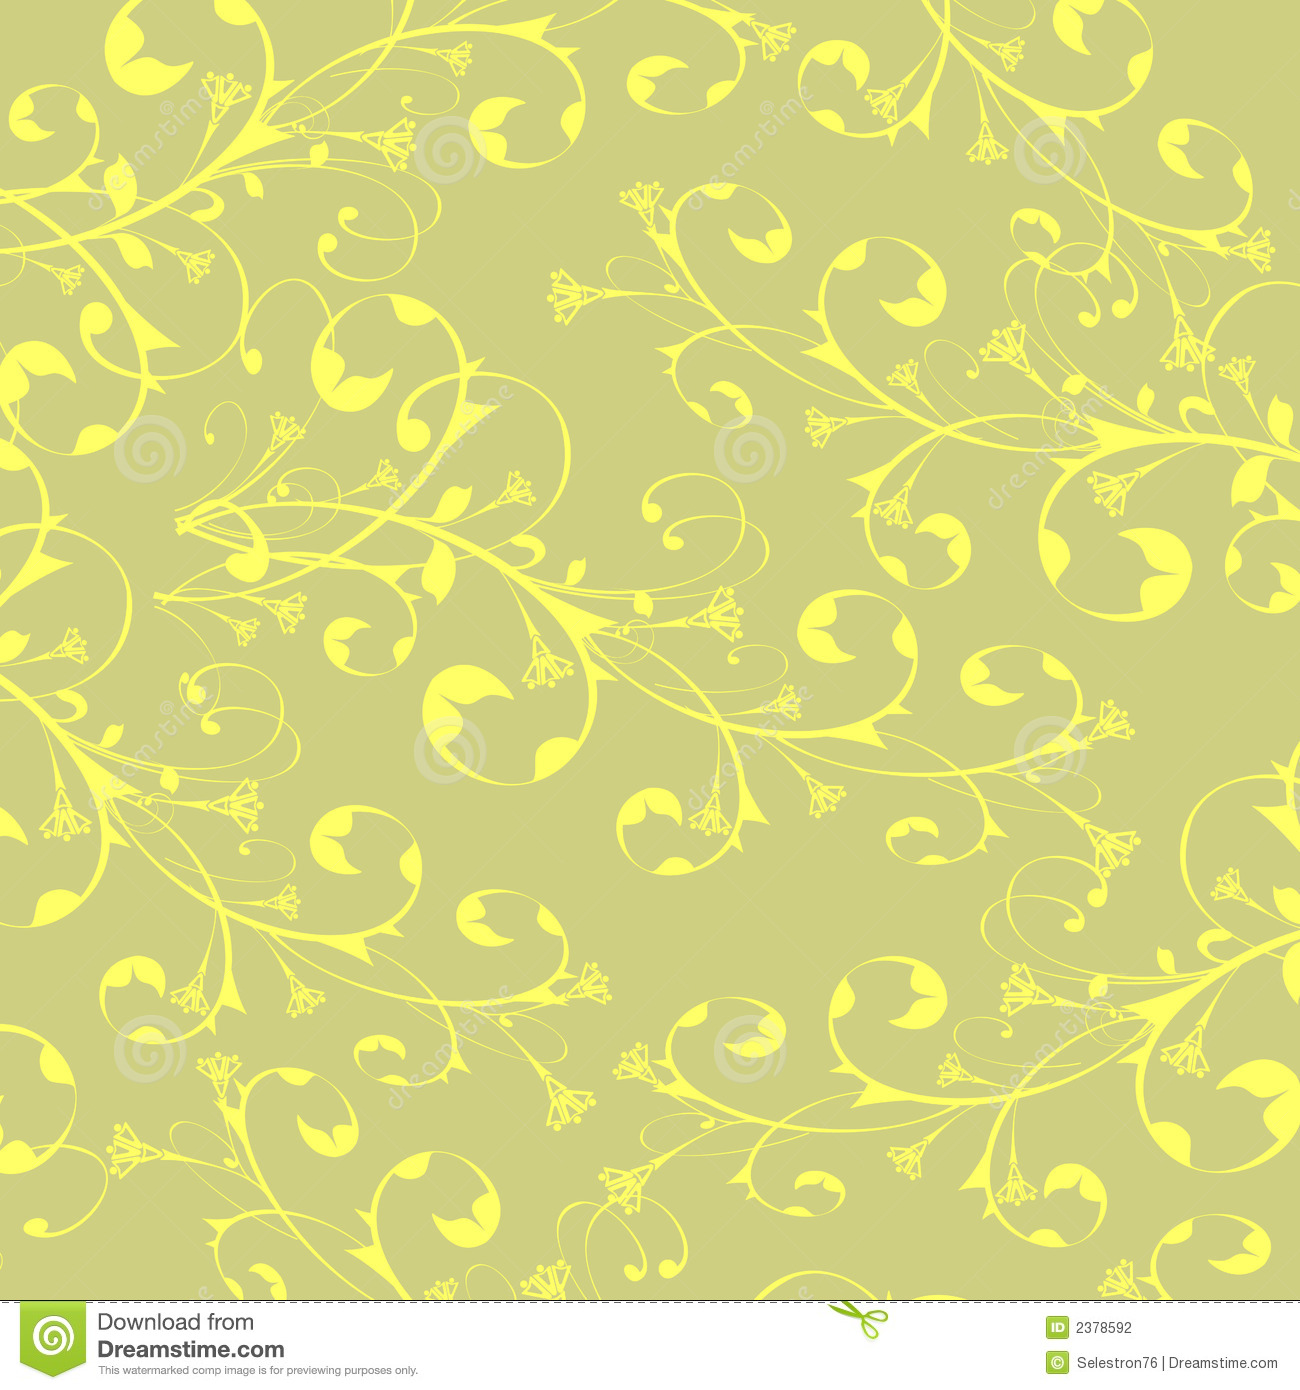 Calligraphy flowers wallpaper stock photography image